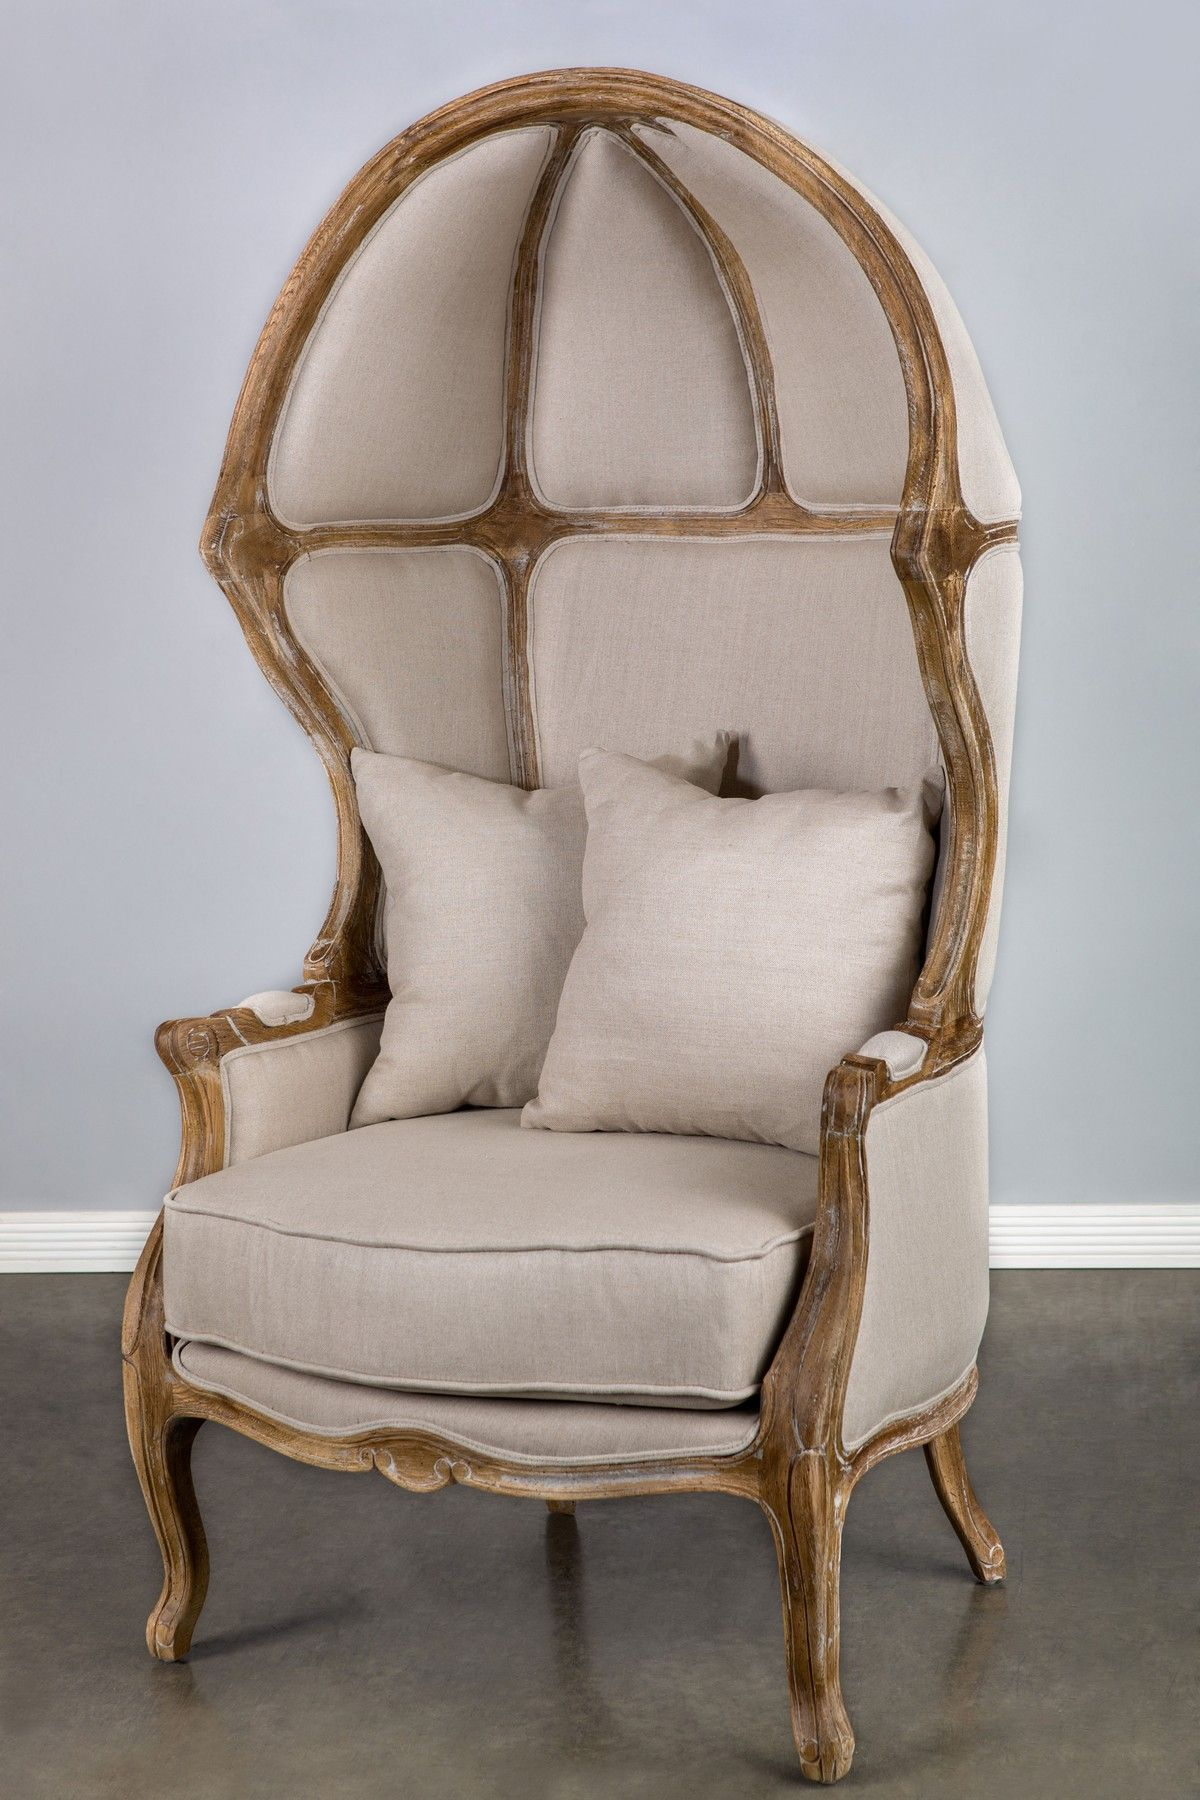 awesome chair quite the conversation piece my sophisticated